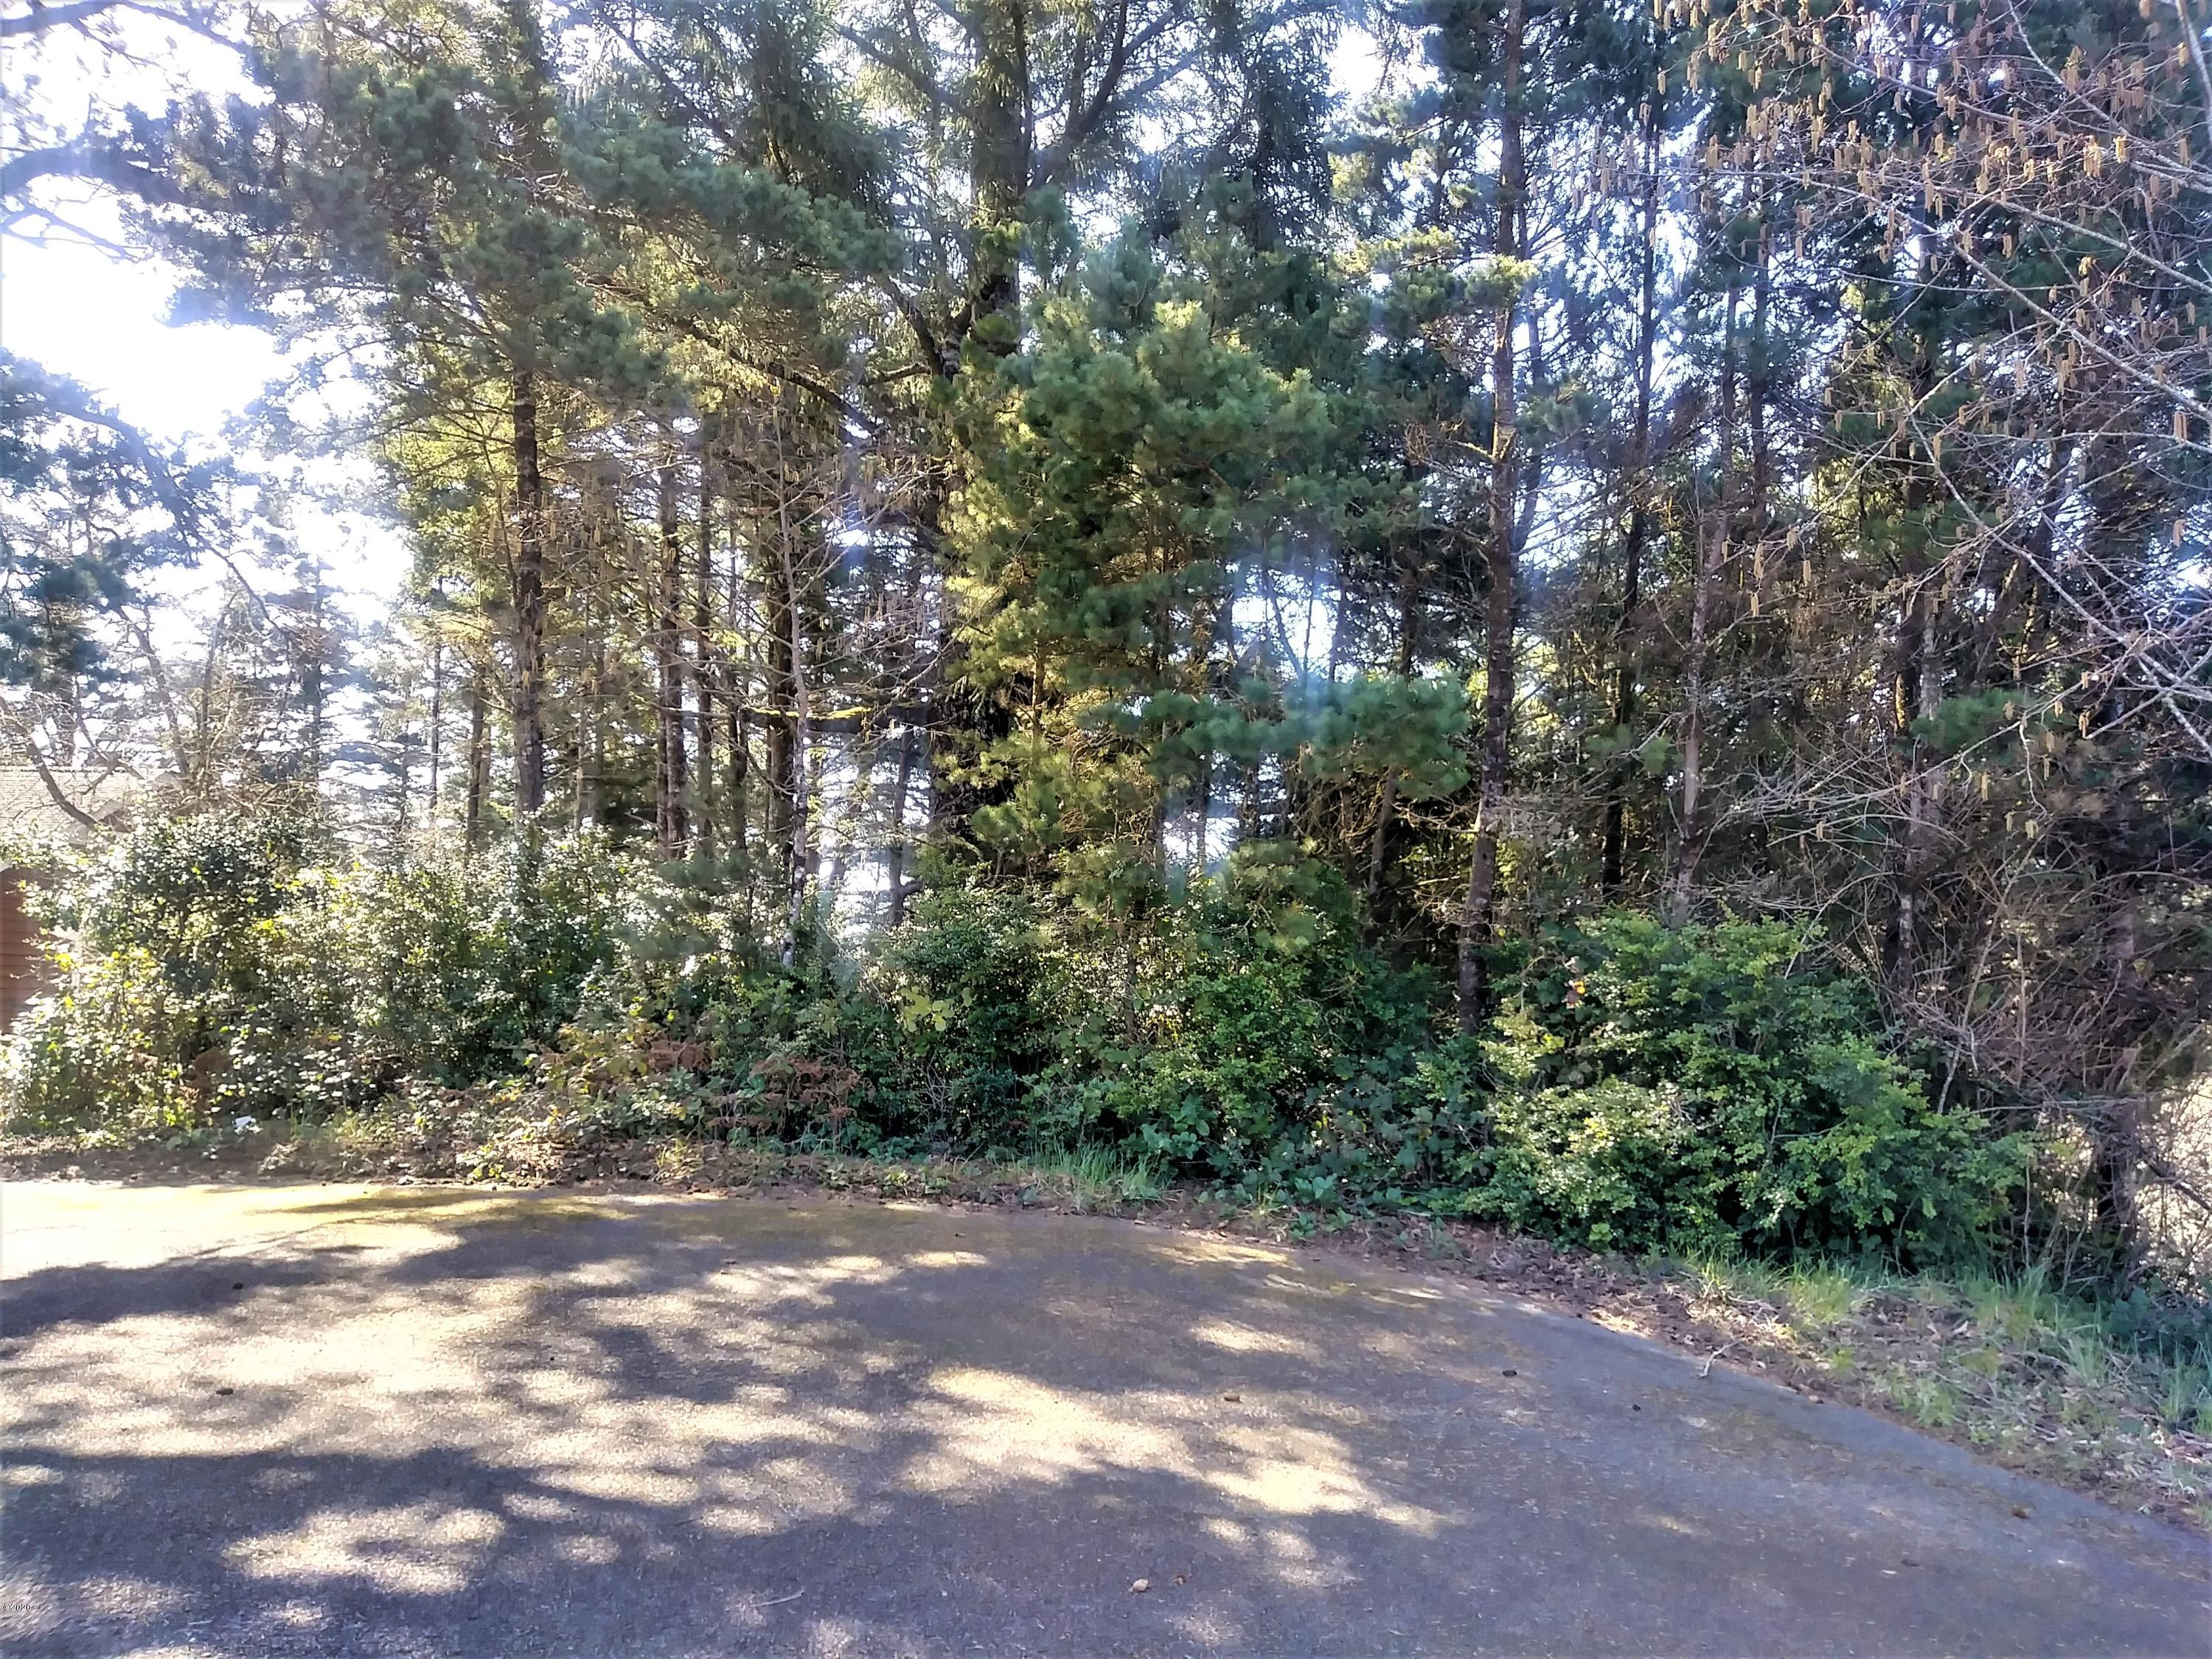 1005 NW Salal Dr, Seal Rock, OR 97376 - Drive up to lot